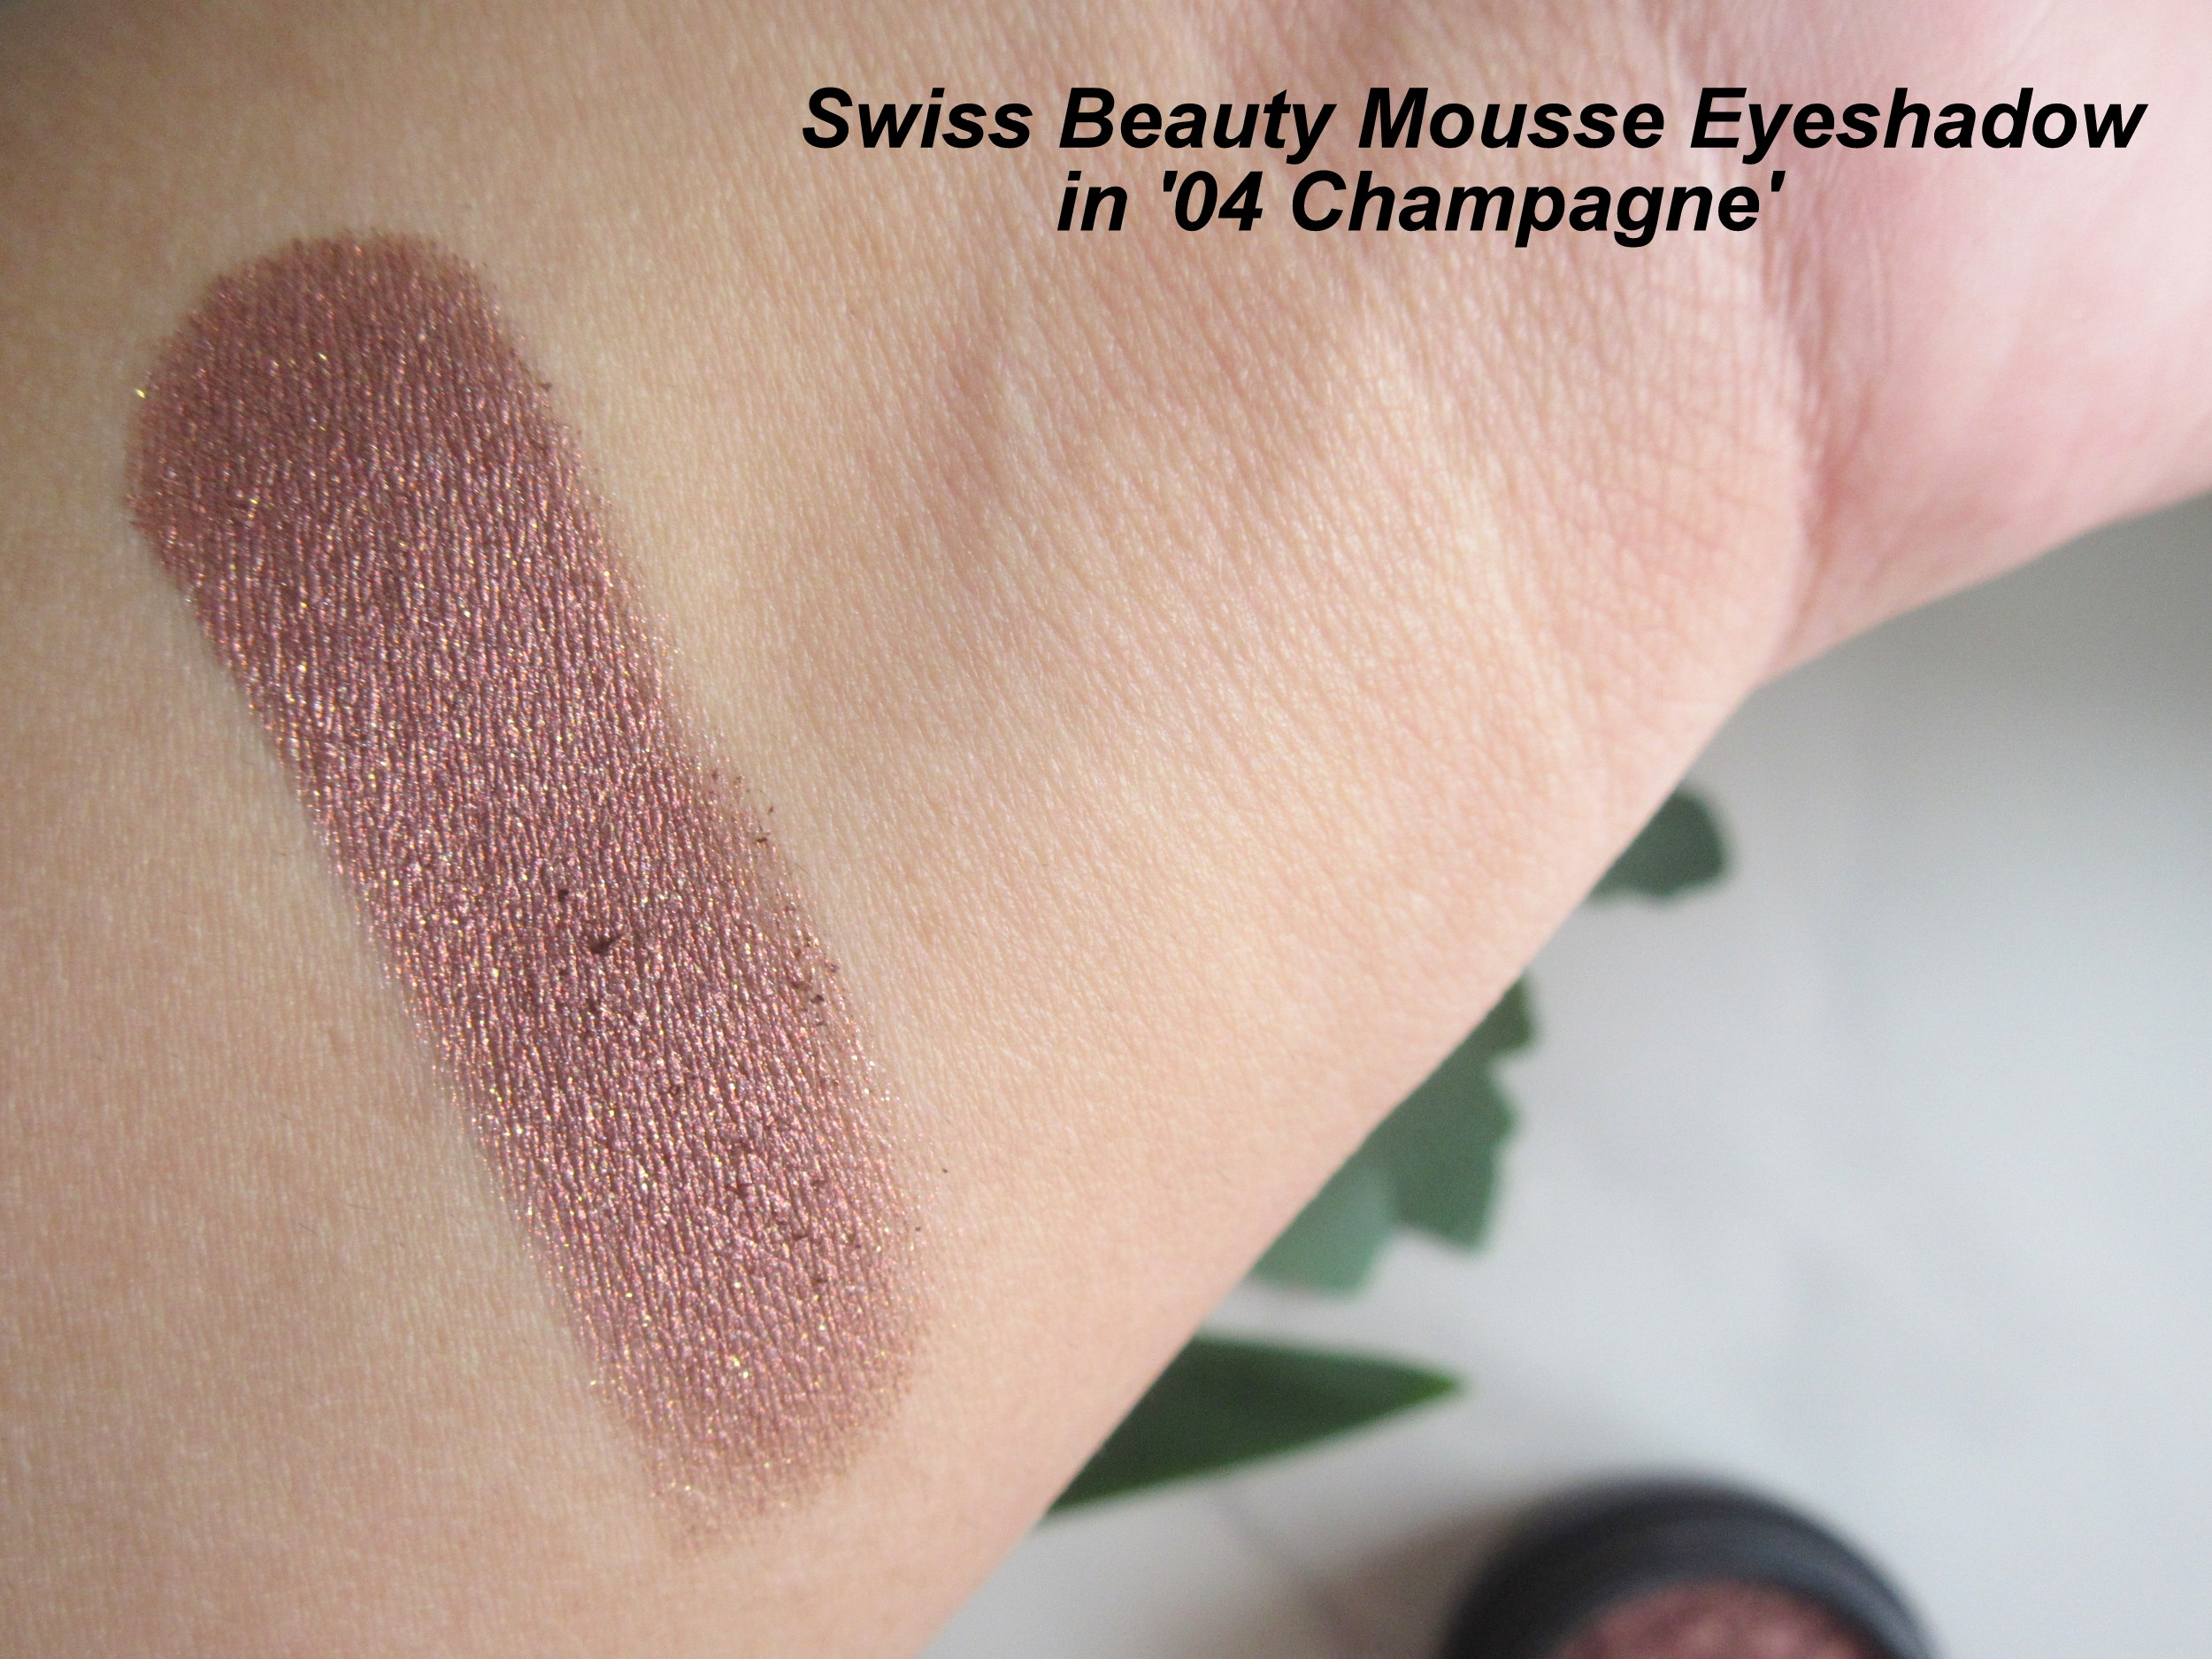 swiss beauty mousse eyeshadow 04 champagne